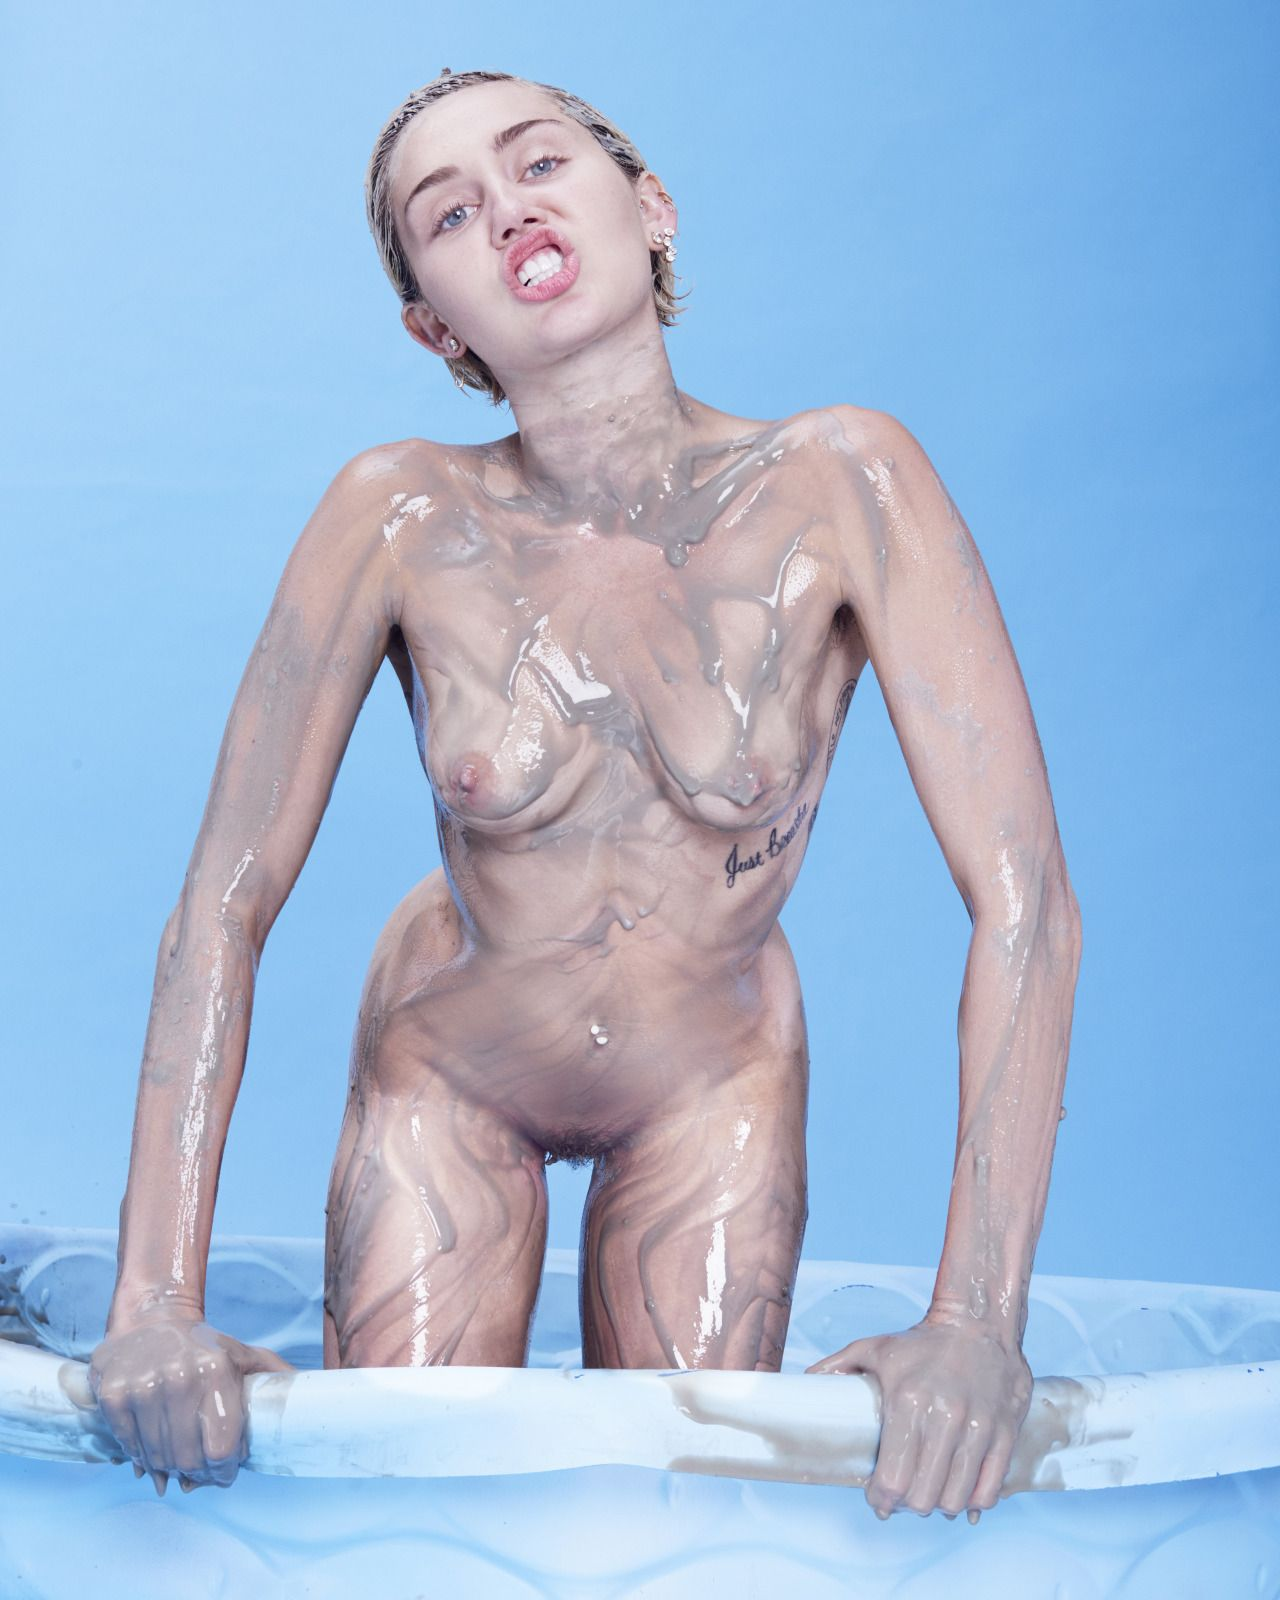 pics of miley cyrus fully nude